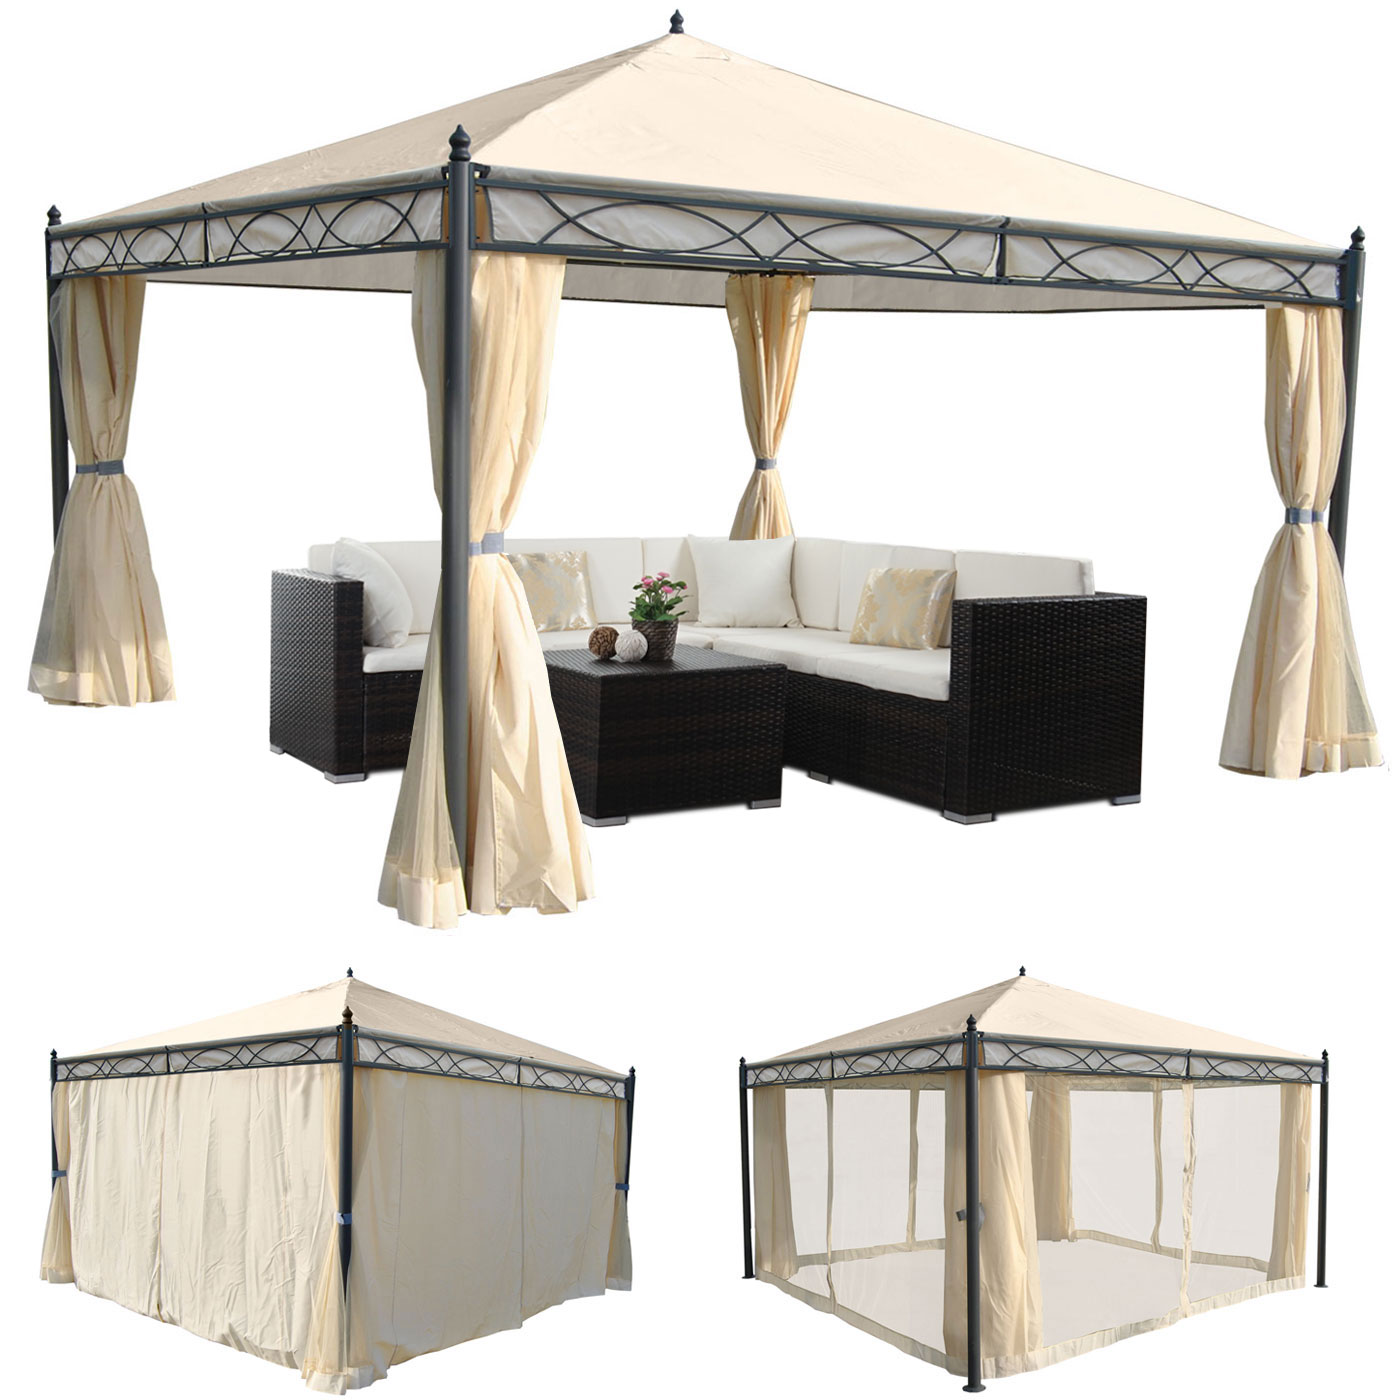 pergola garten pavillon stabiles 7cm gestell mit seitenwand moskitonetz creme 4x4m garten. Black Bedroom Furniture Sets. Home Design Ideas